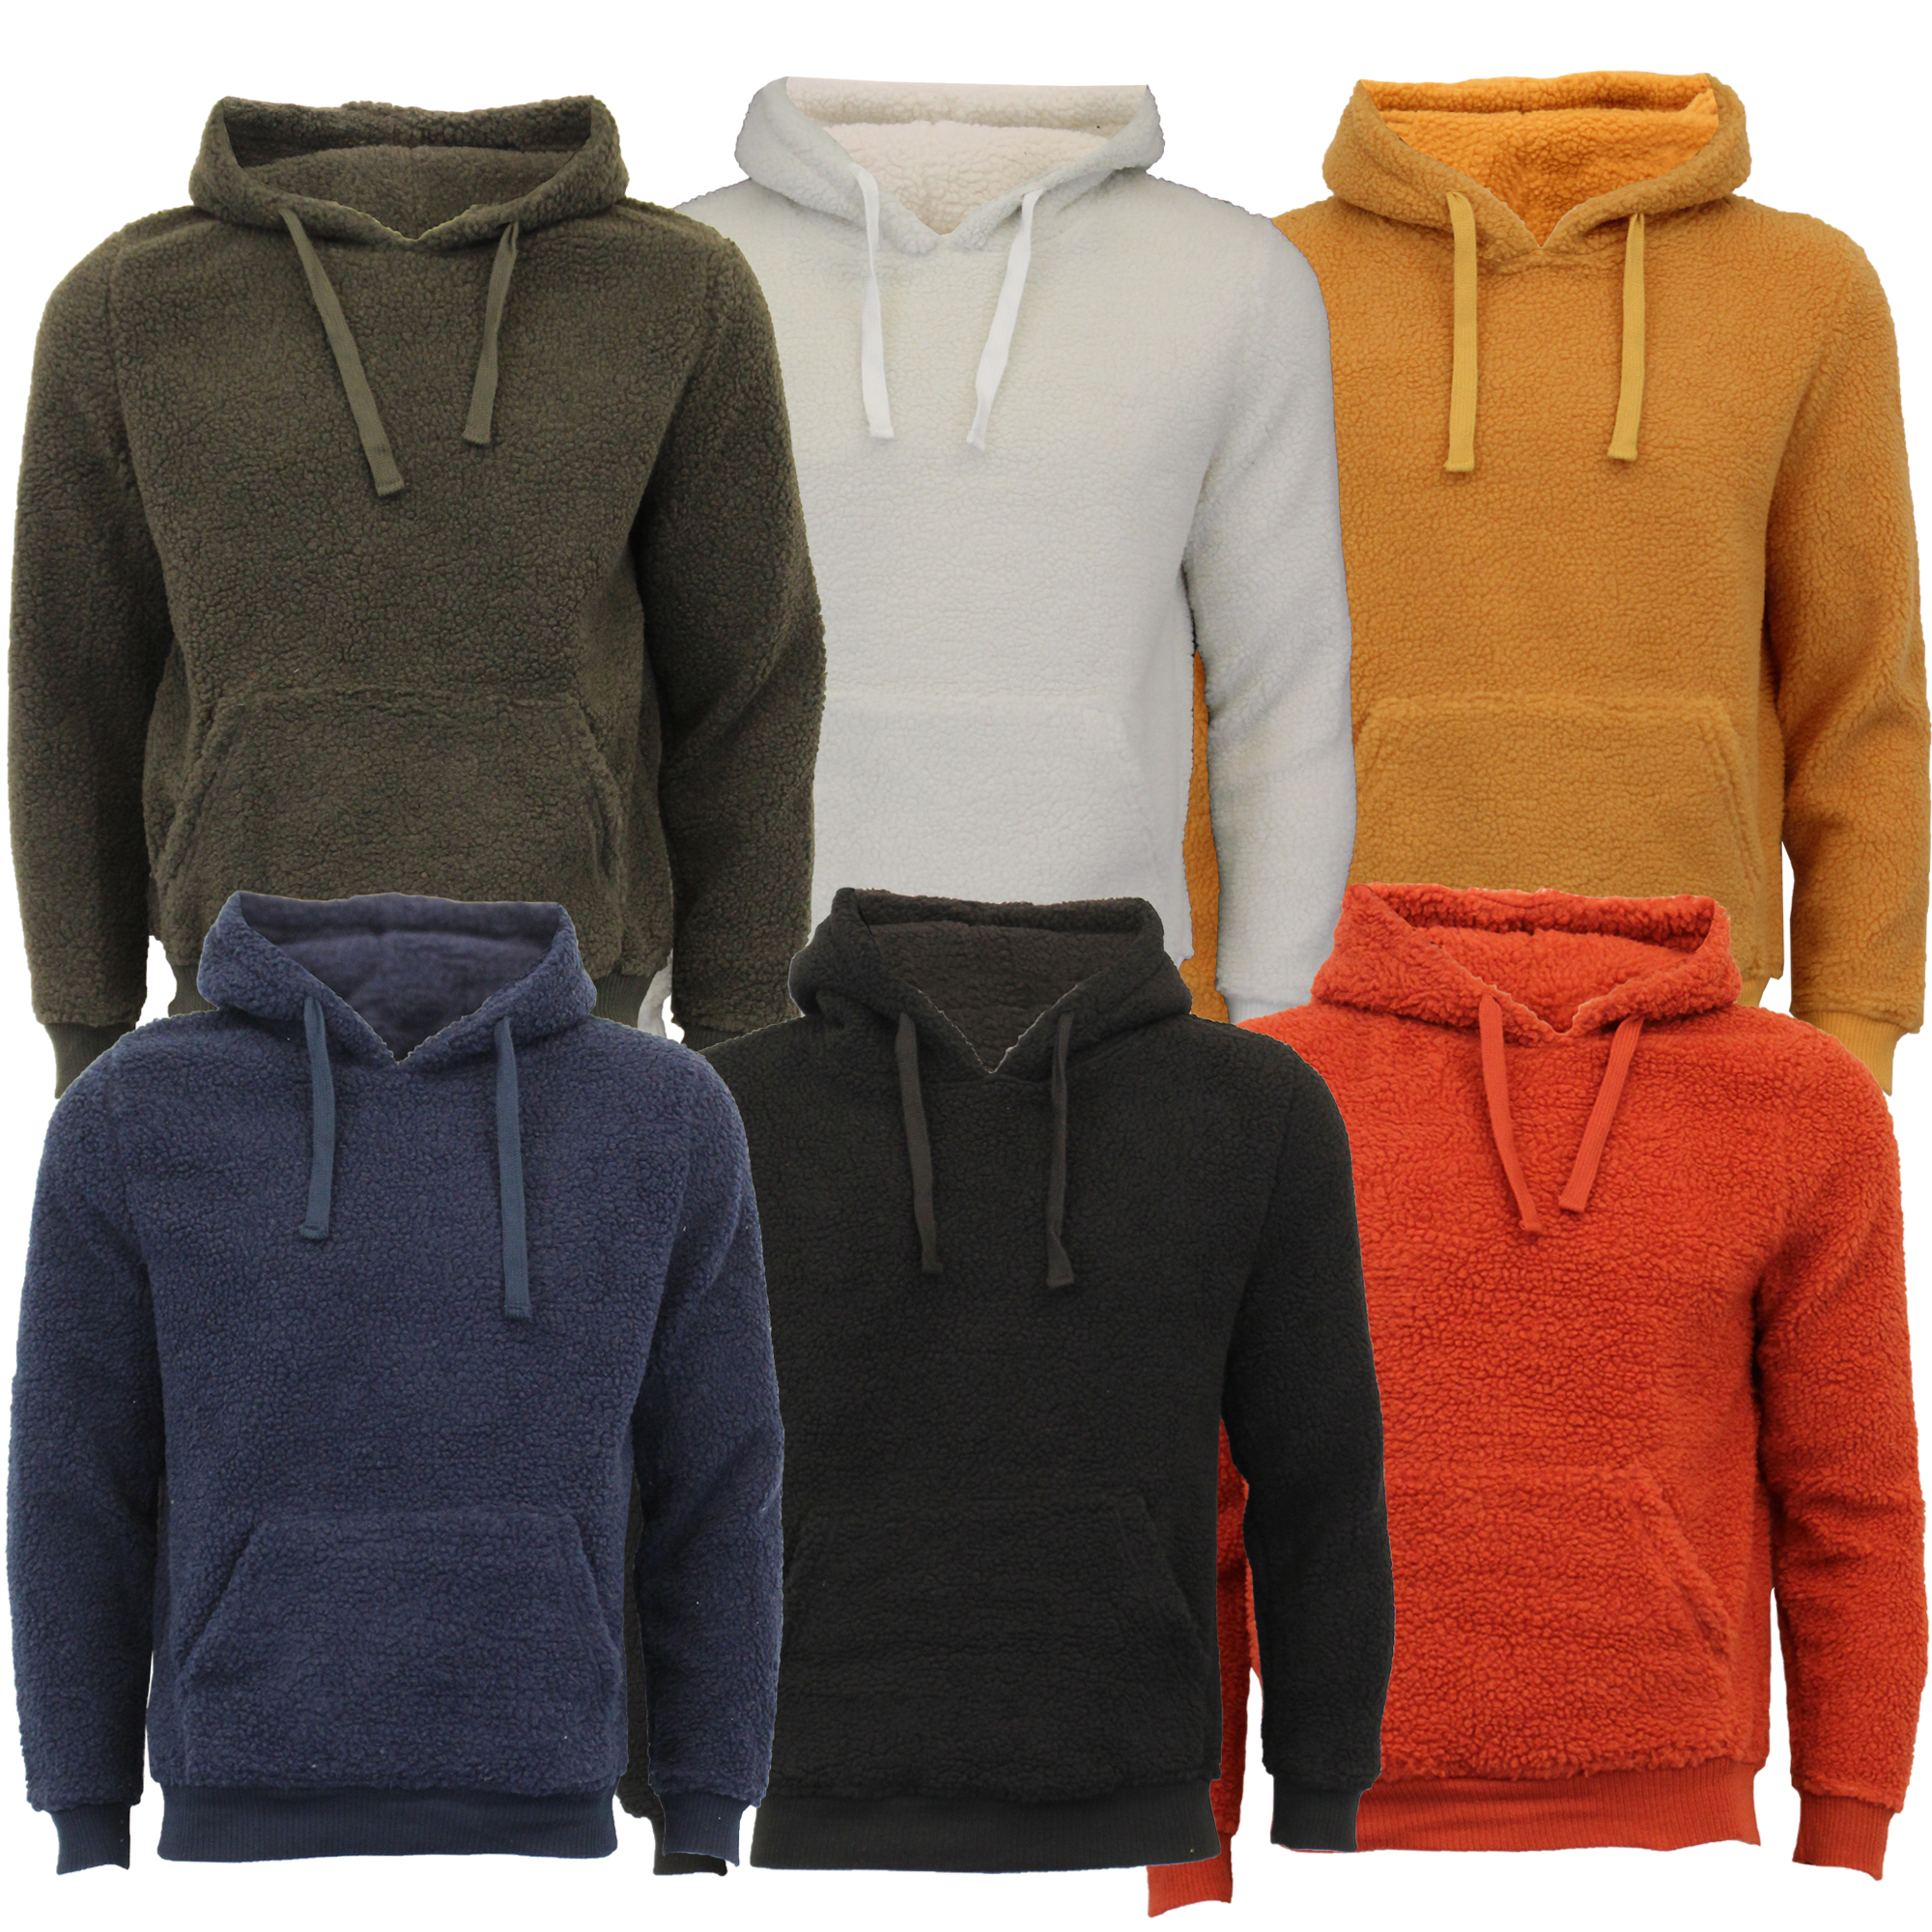 Mens-Sherpa-Fleece-Borg-Sweatshirt-Brave-Soul-Over-The-Head-GROMIT-Hooded-Top thumbnail 5